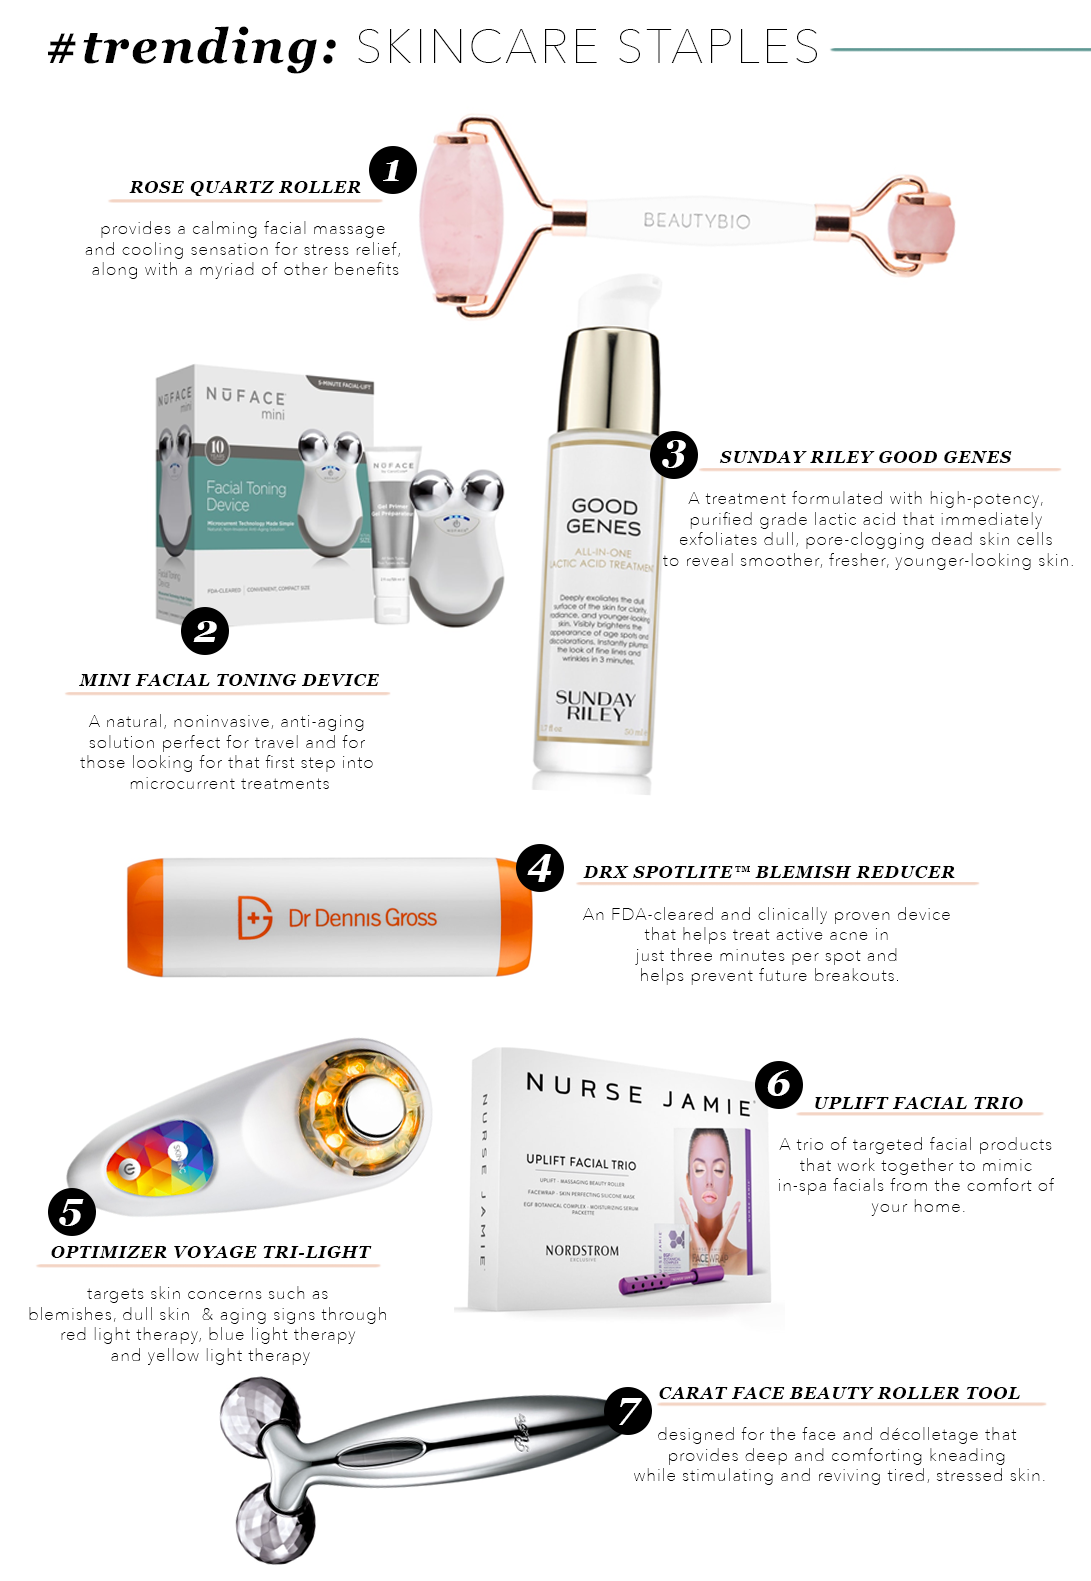 5d577e4bd12 TRENDING SkinCare Staples | Lunchpails and Lipstick | Fashion, Fitness, Beauty  and Travel for the Modern Mom | Best Skincare products | Quartz Roller |  Mini ...